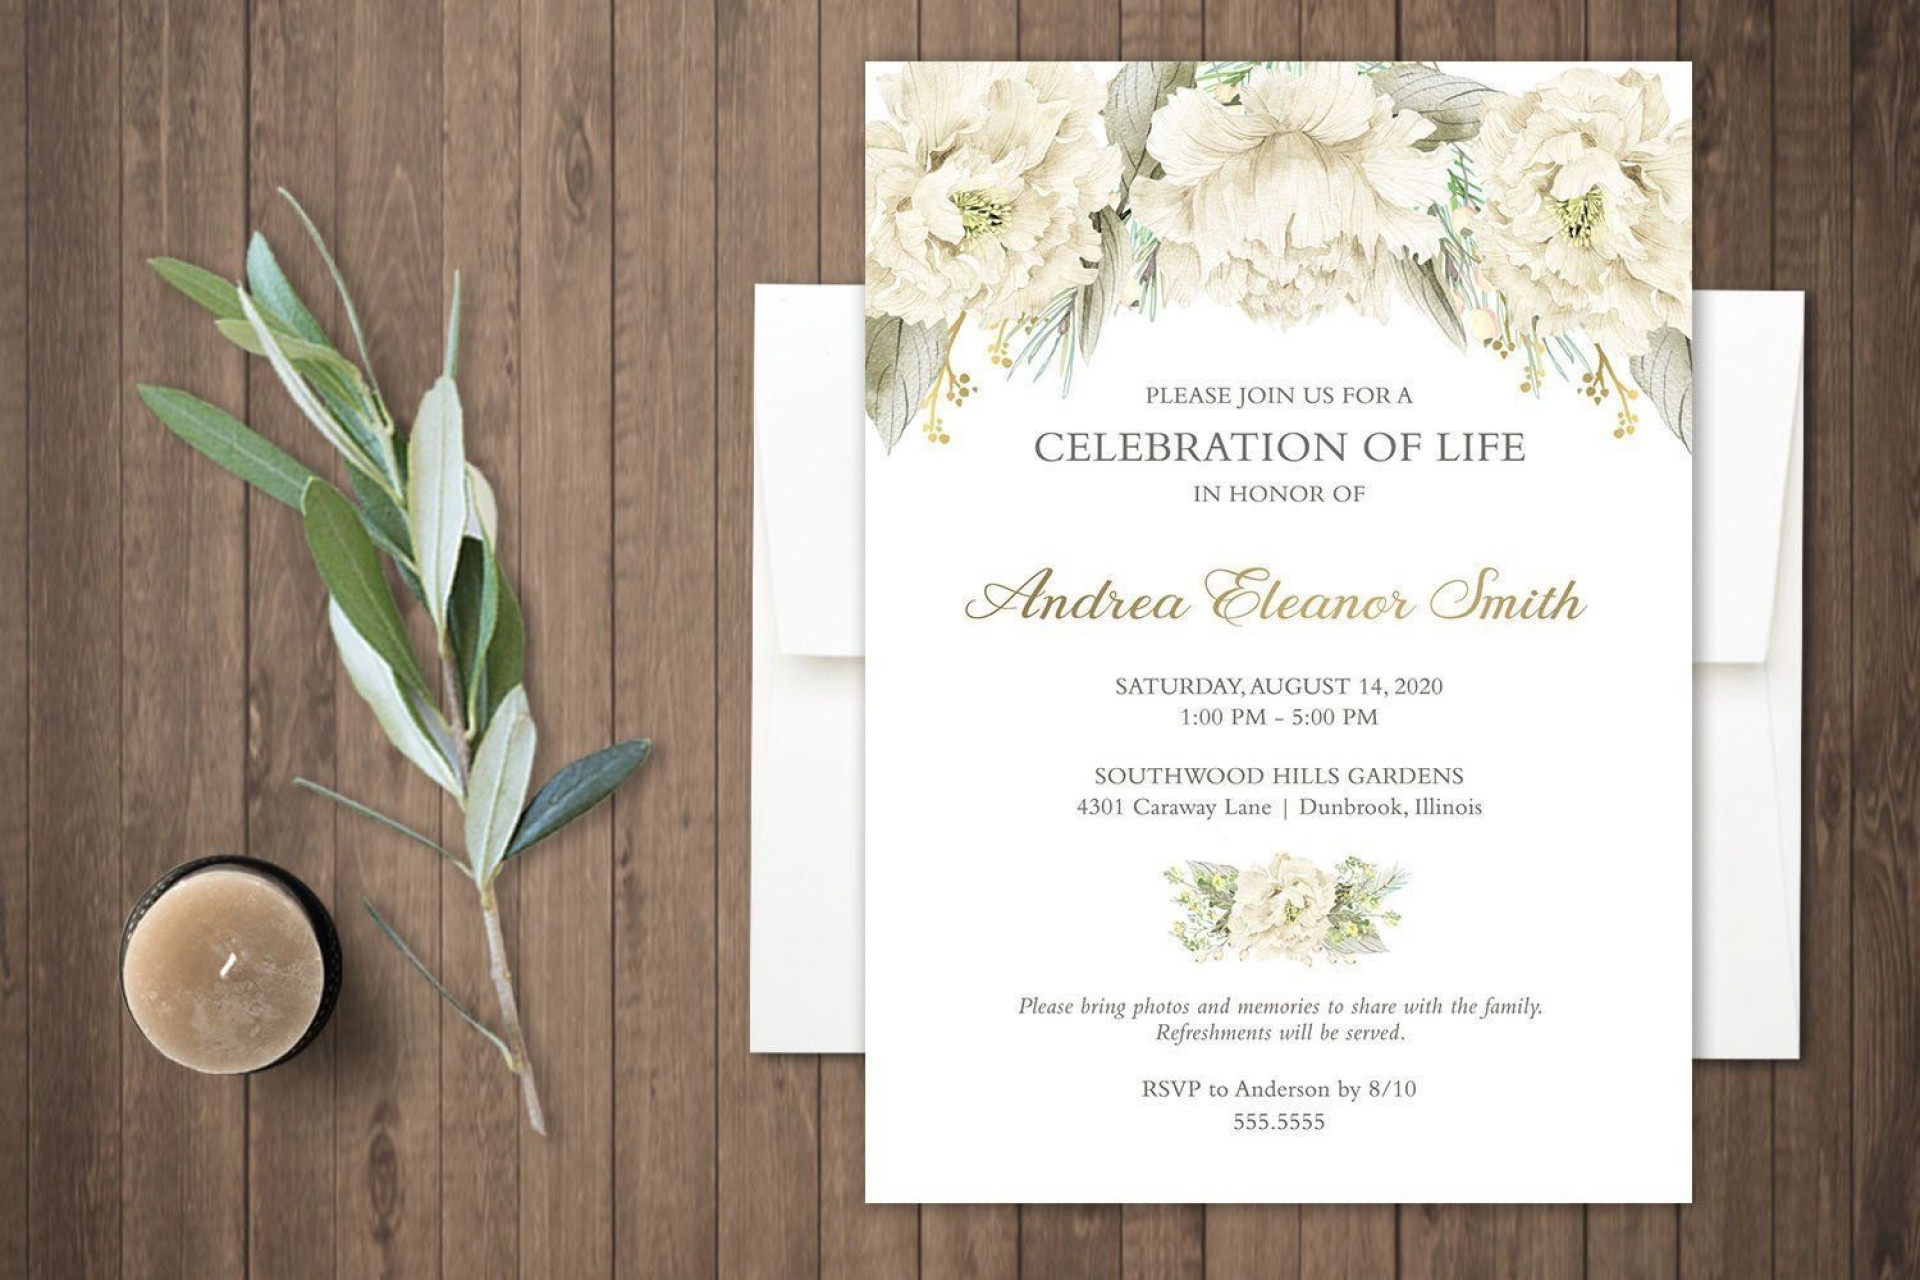 000 Fearsome Celebration Of Life Invitation Template Free High Resolution 1920